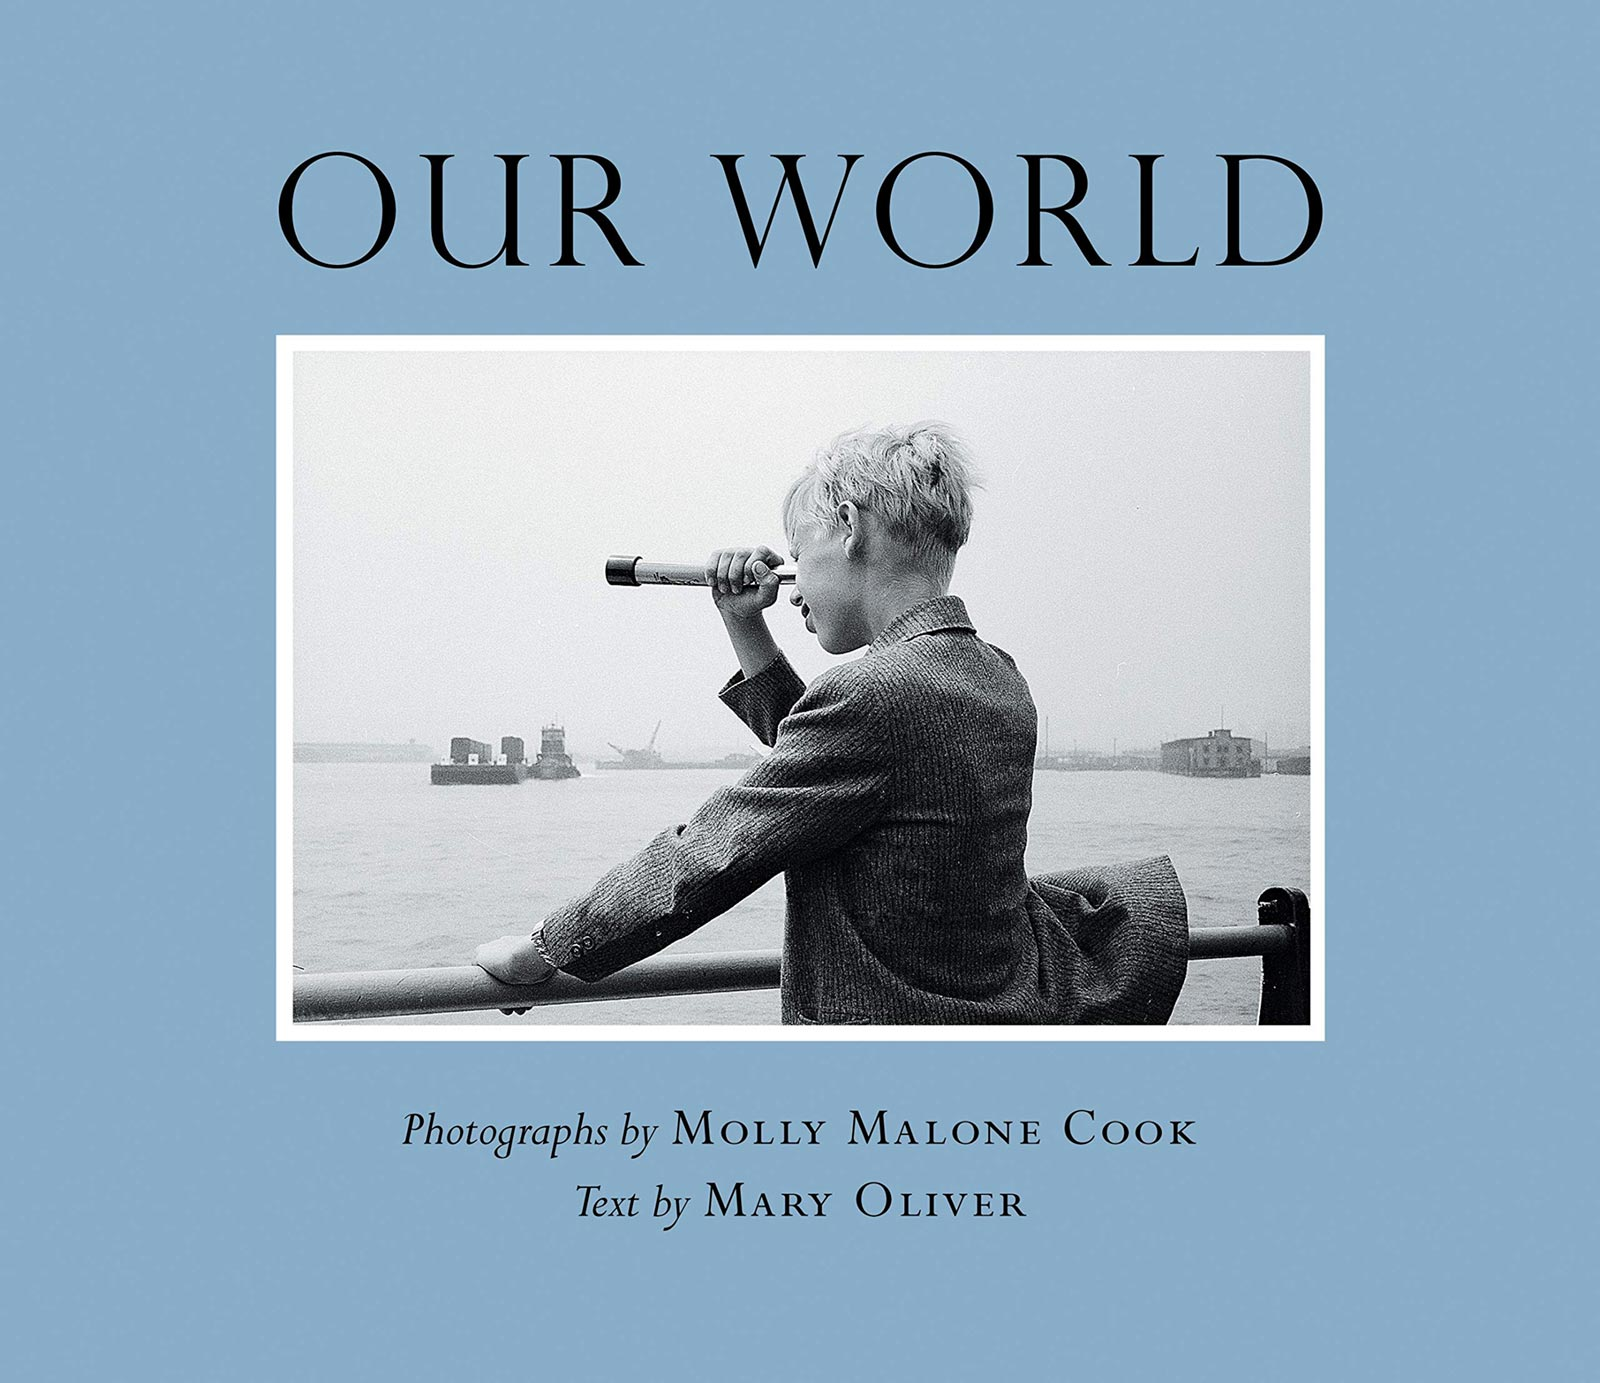 Our World - Molly Malone Cook